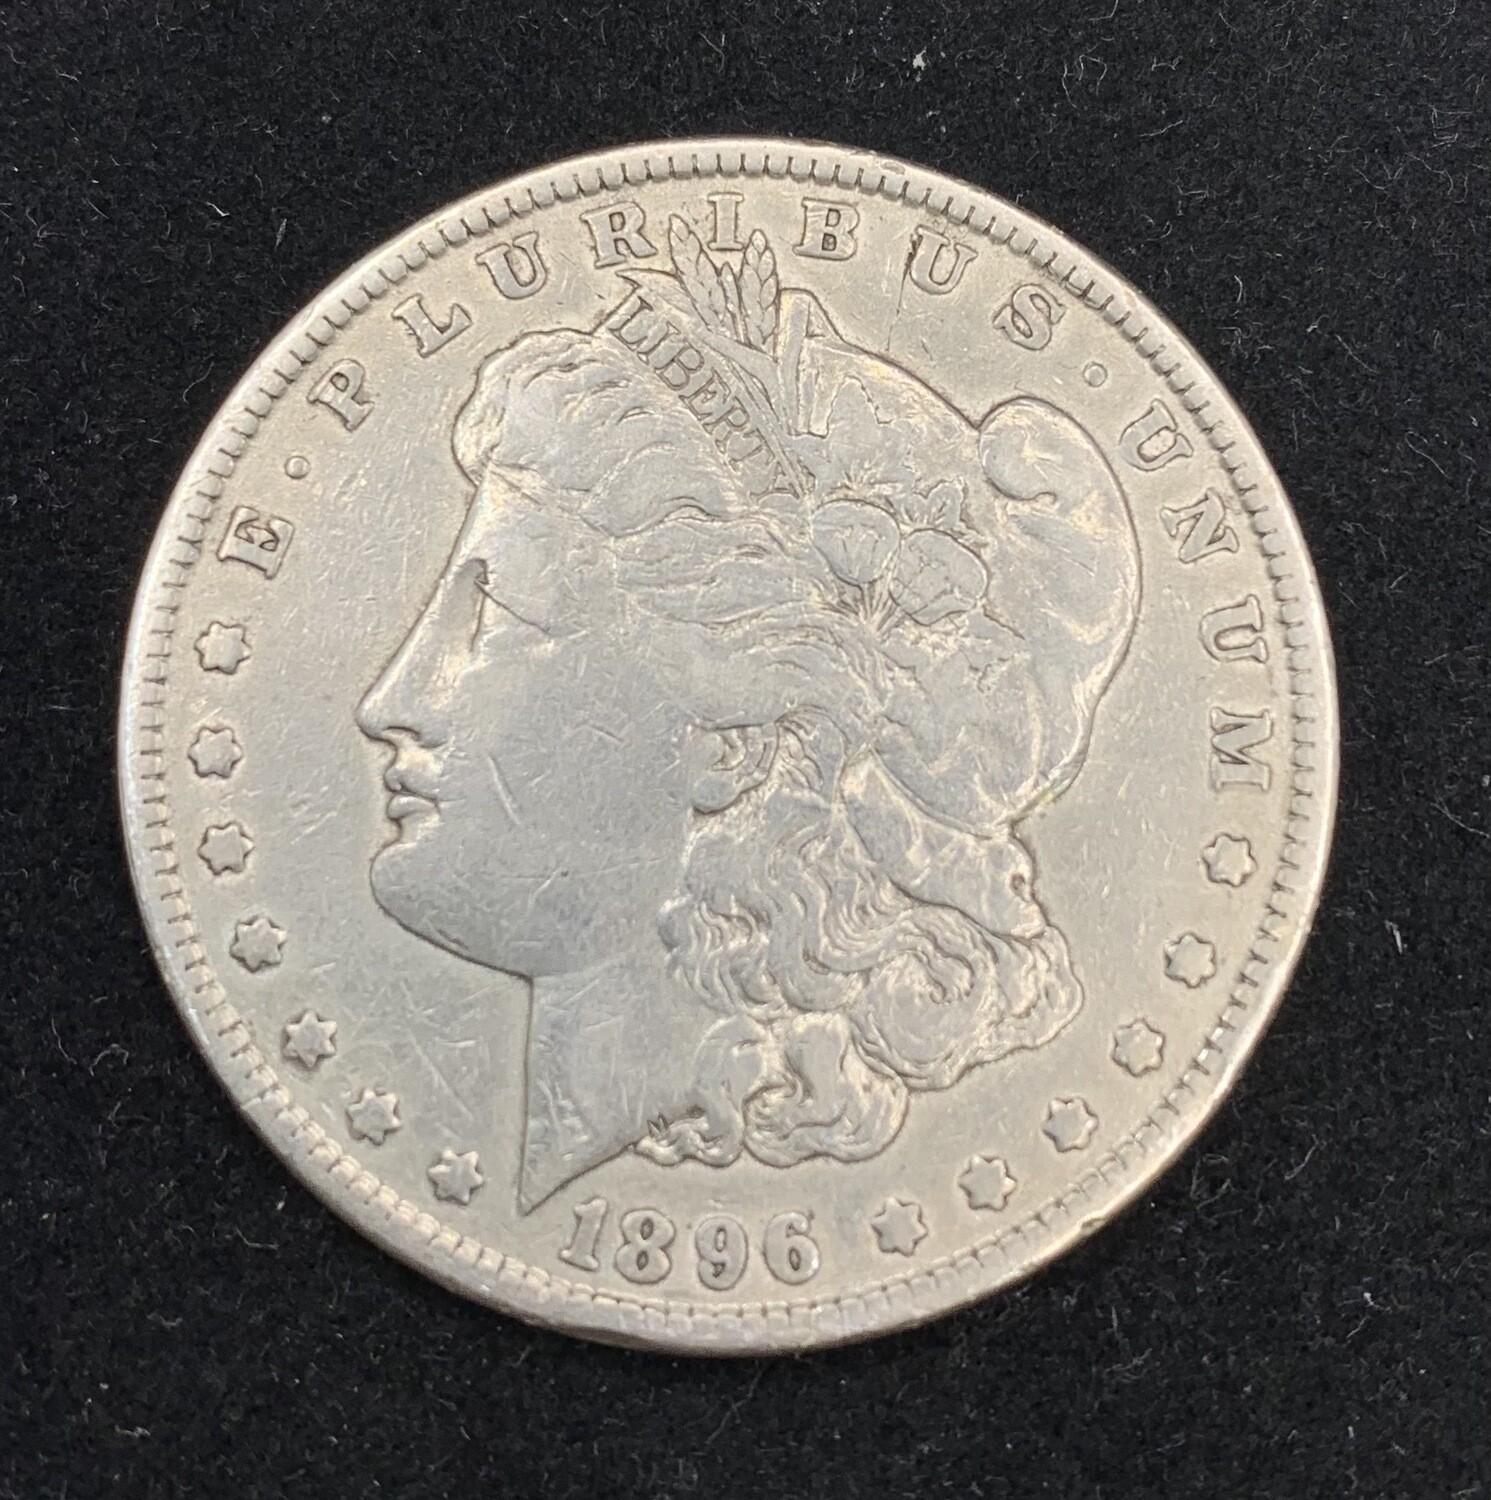 1896 Morgan Silver Dollar - Philadelphia Mint